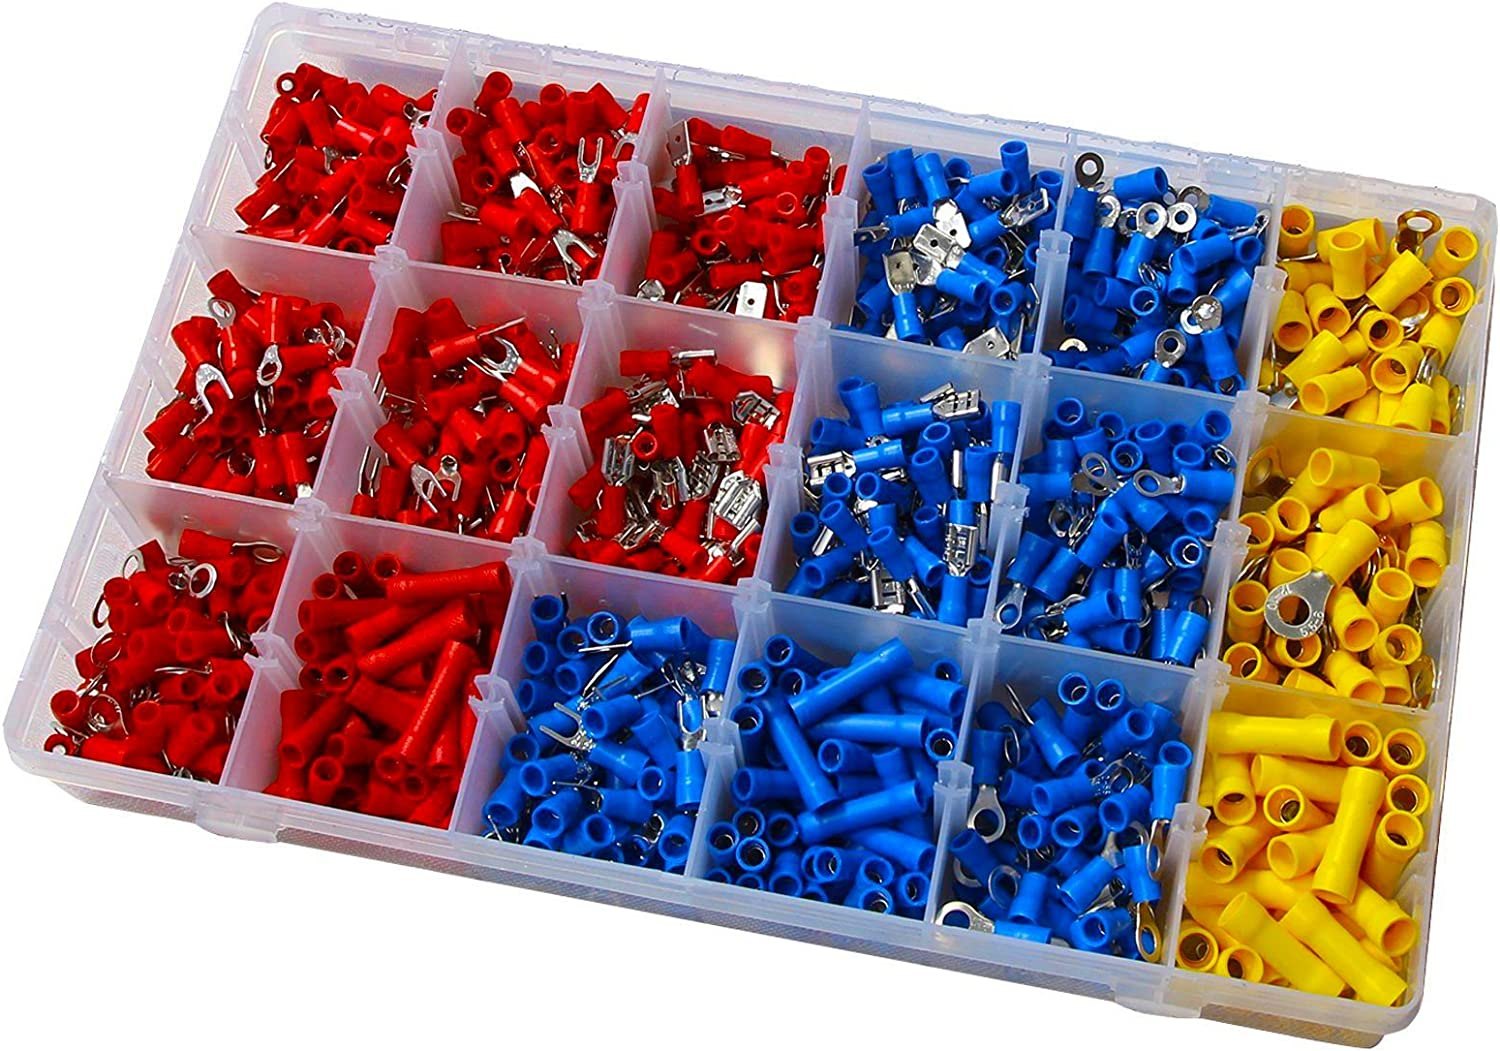 1200pcs Insulated Assorted Electrical Wiring Wire Connectors Set Crimp Automotive Terminals Mixed Assorted Lug Kit